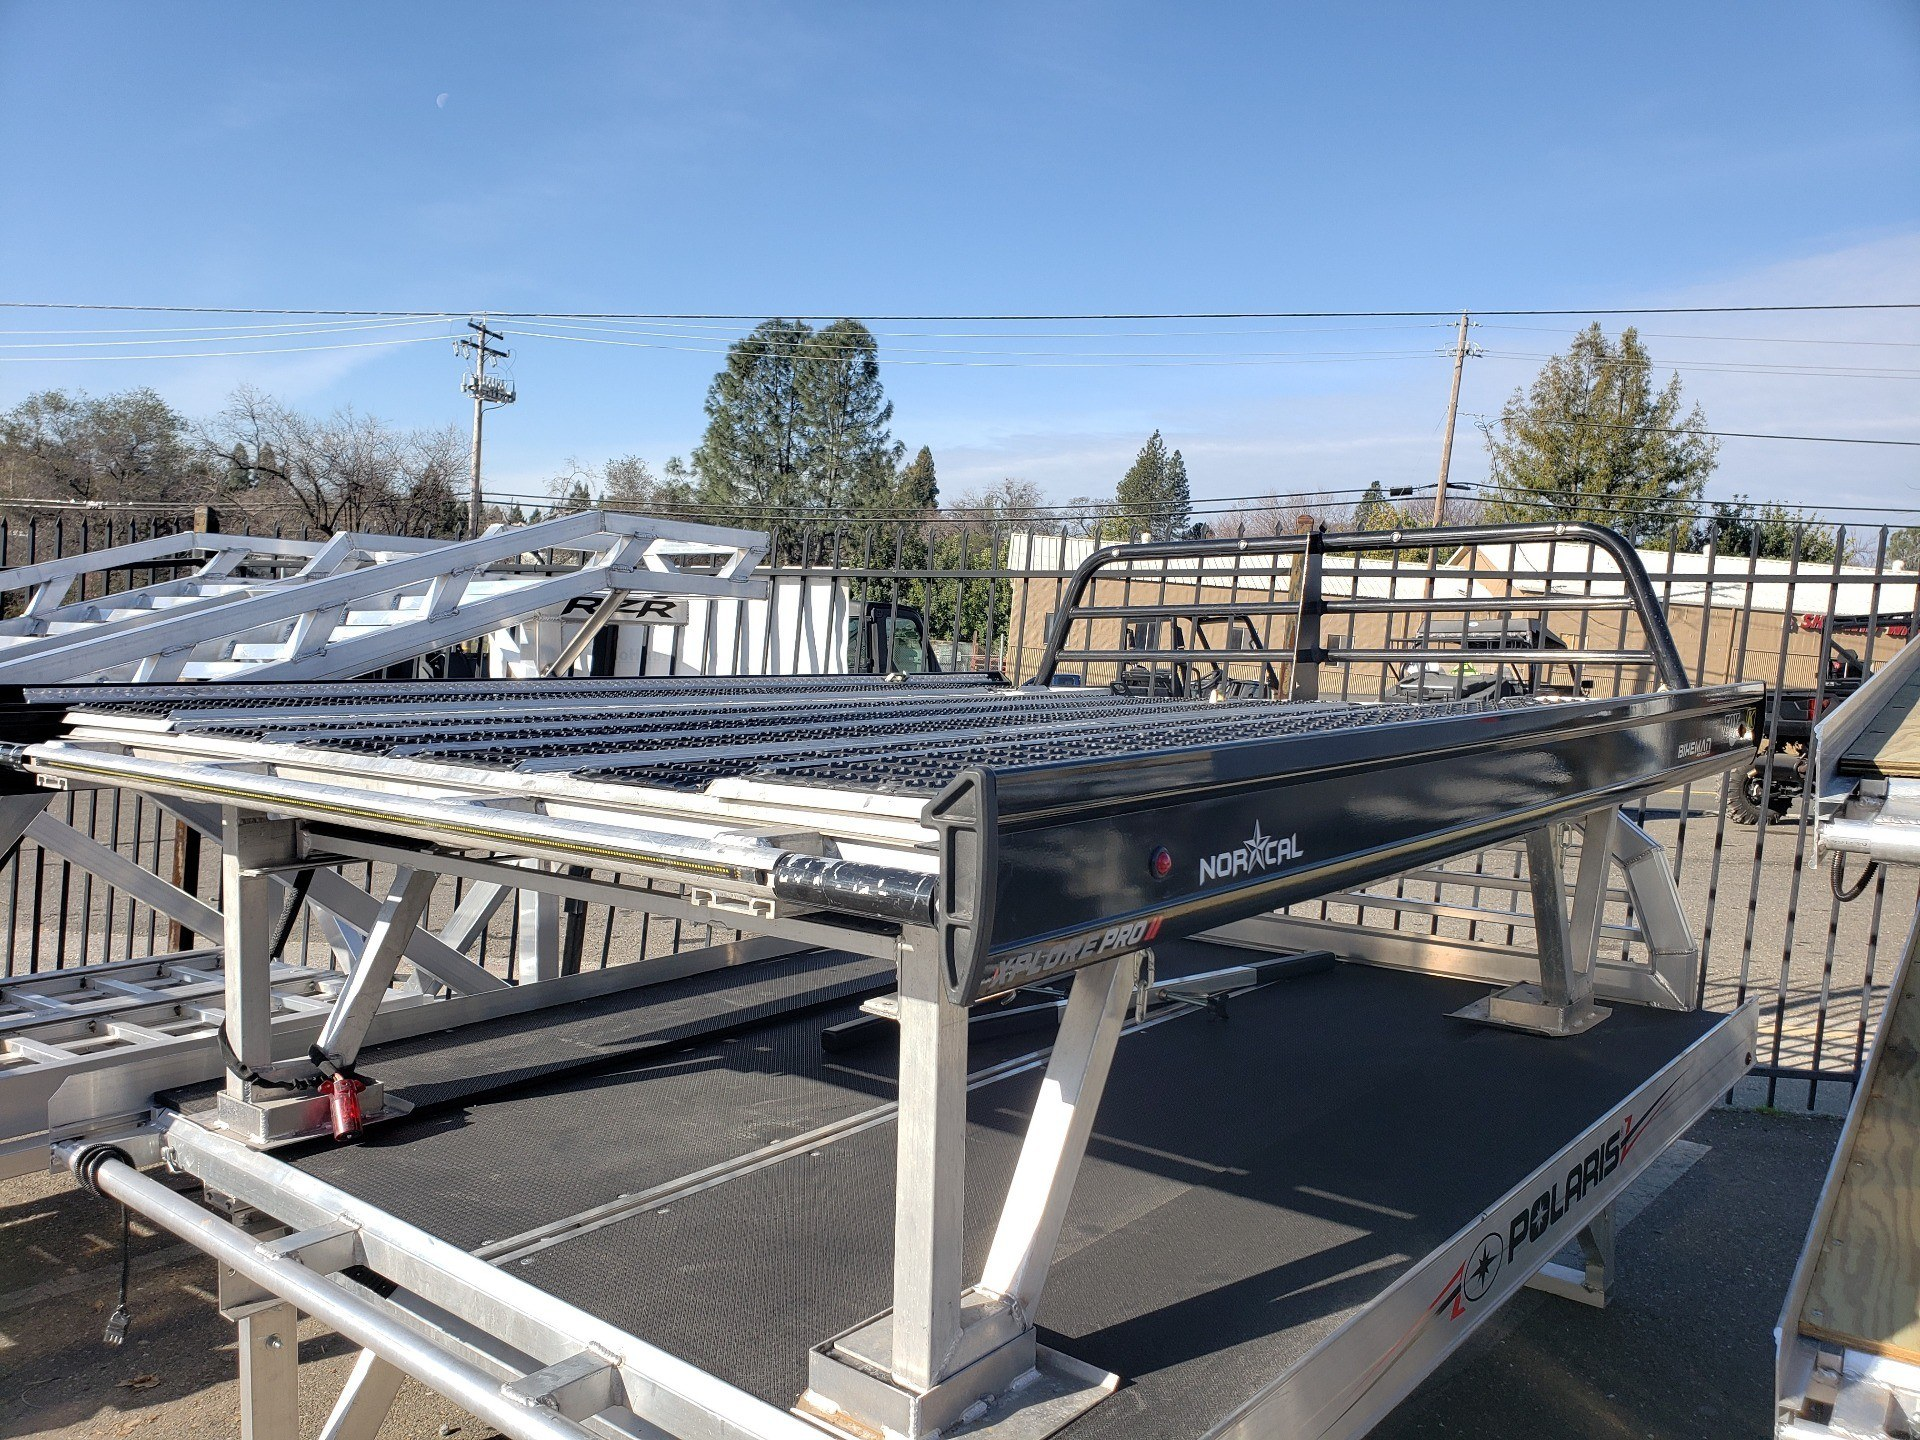 2019 Marlin ExplorePro Sled Deck in Auburn, California - Photo 1